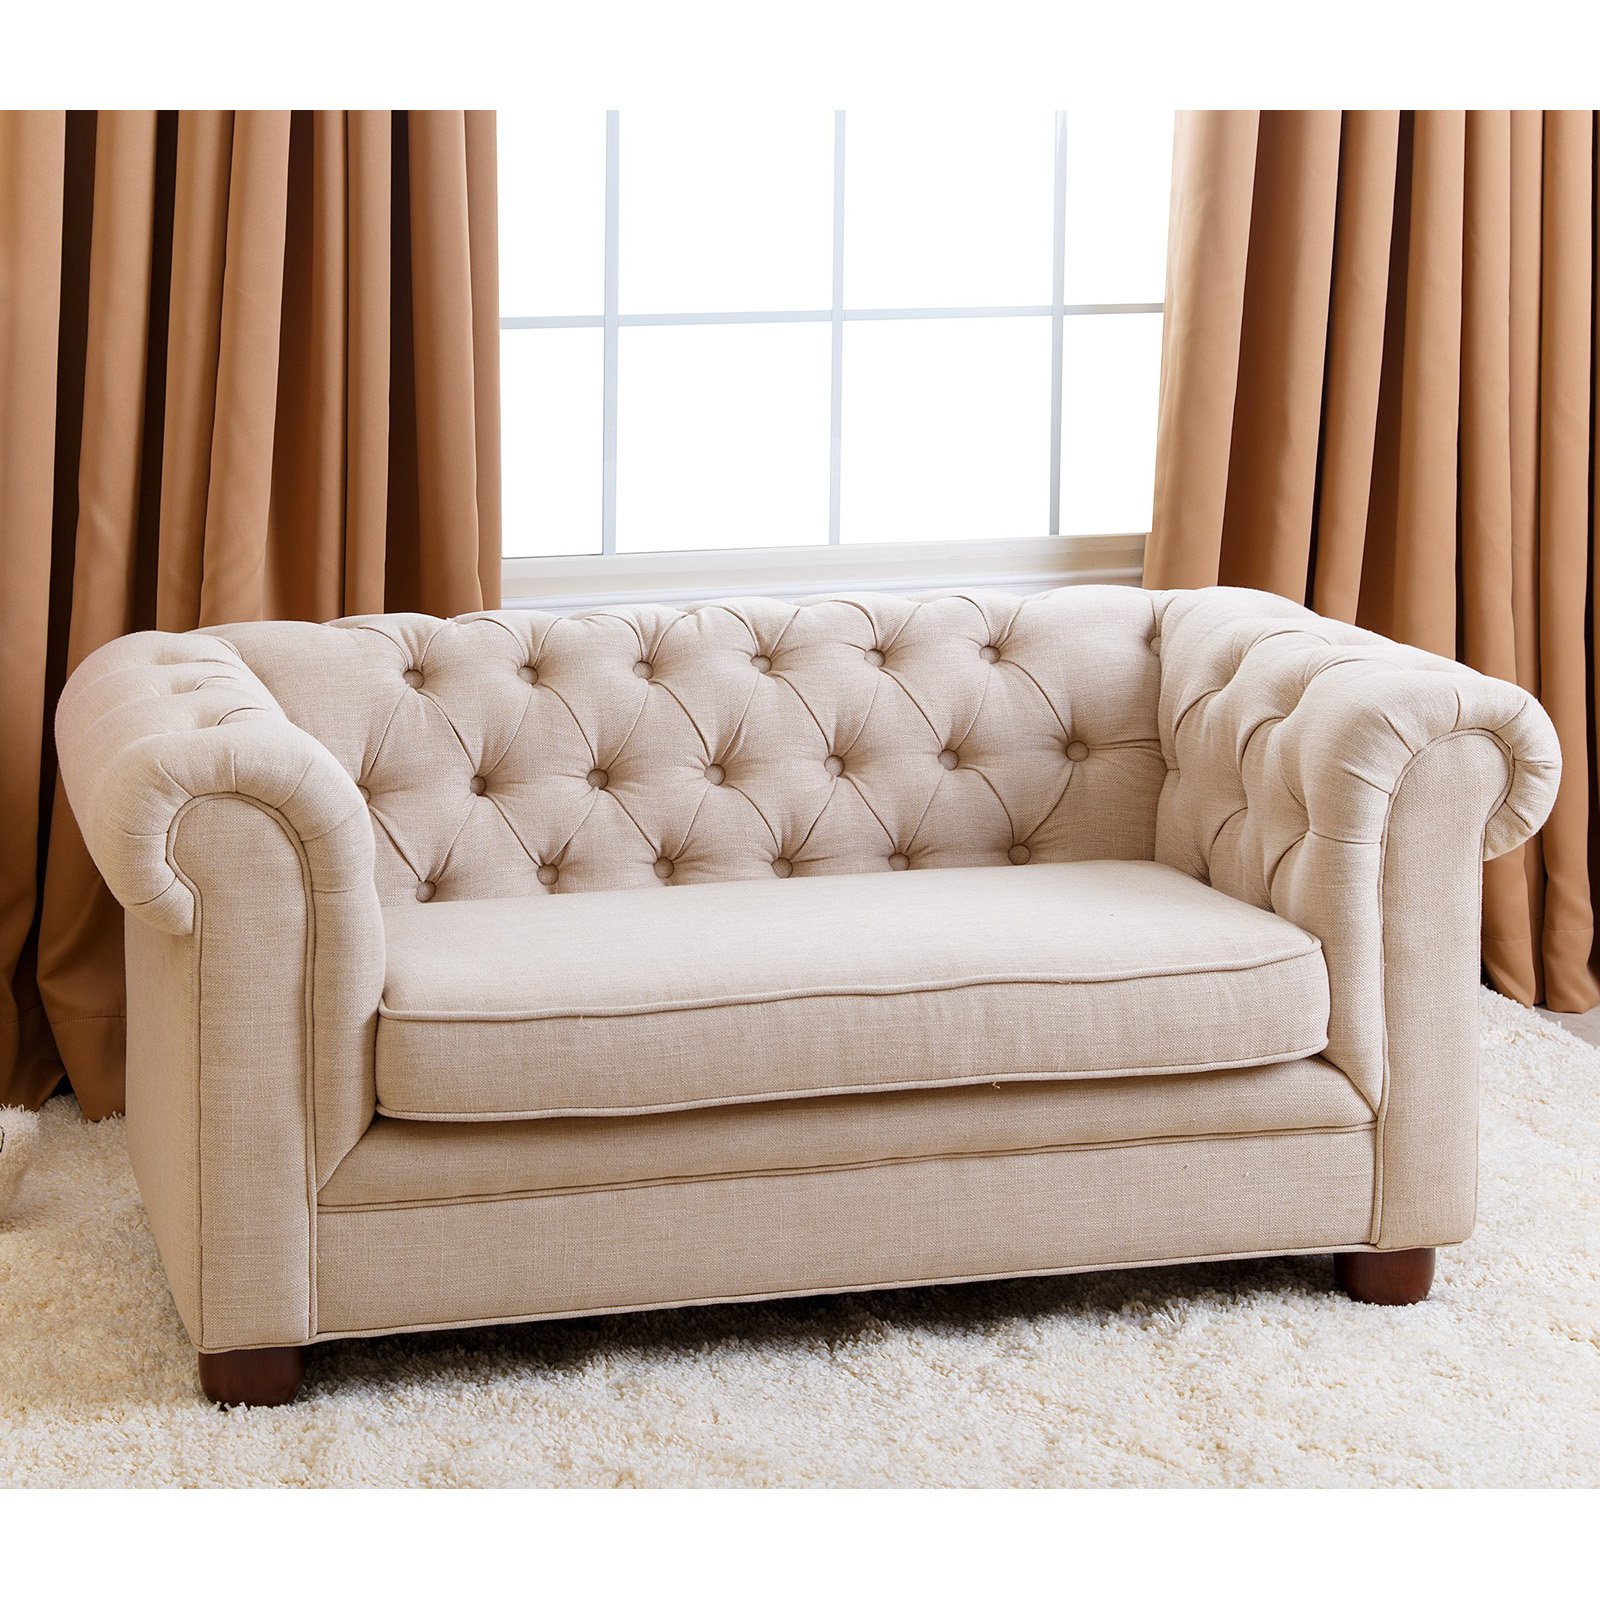 Abbyson Living Rj Mini Chesterfield Sofa – Wheat – Kids With Sofa Chairs For Bedroom (View 7 of 15)